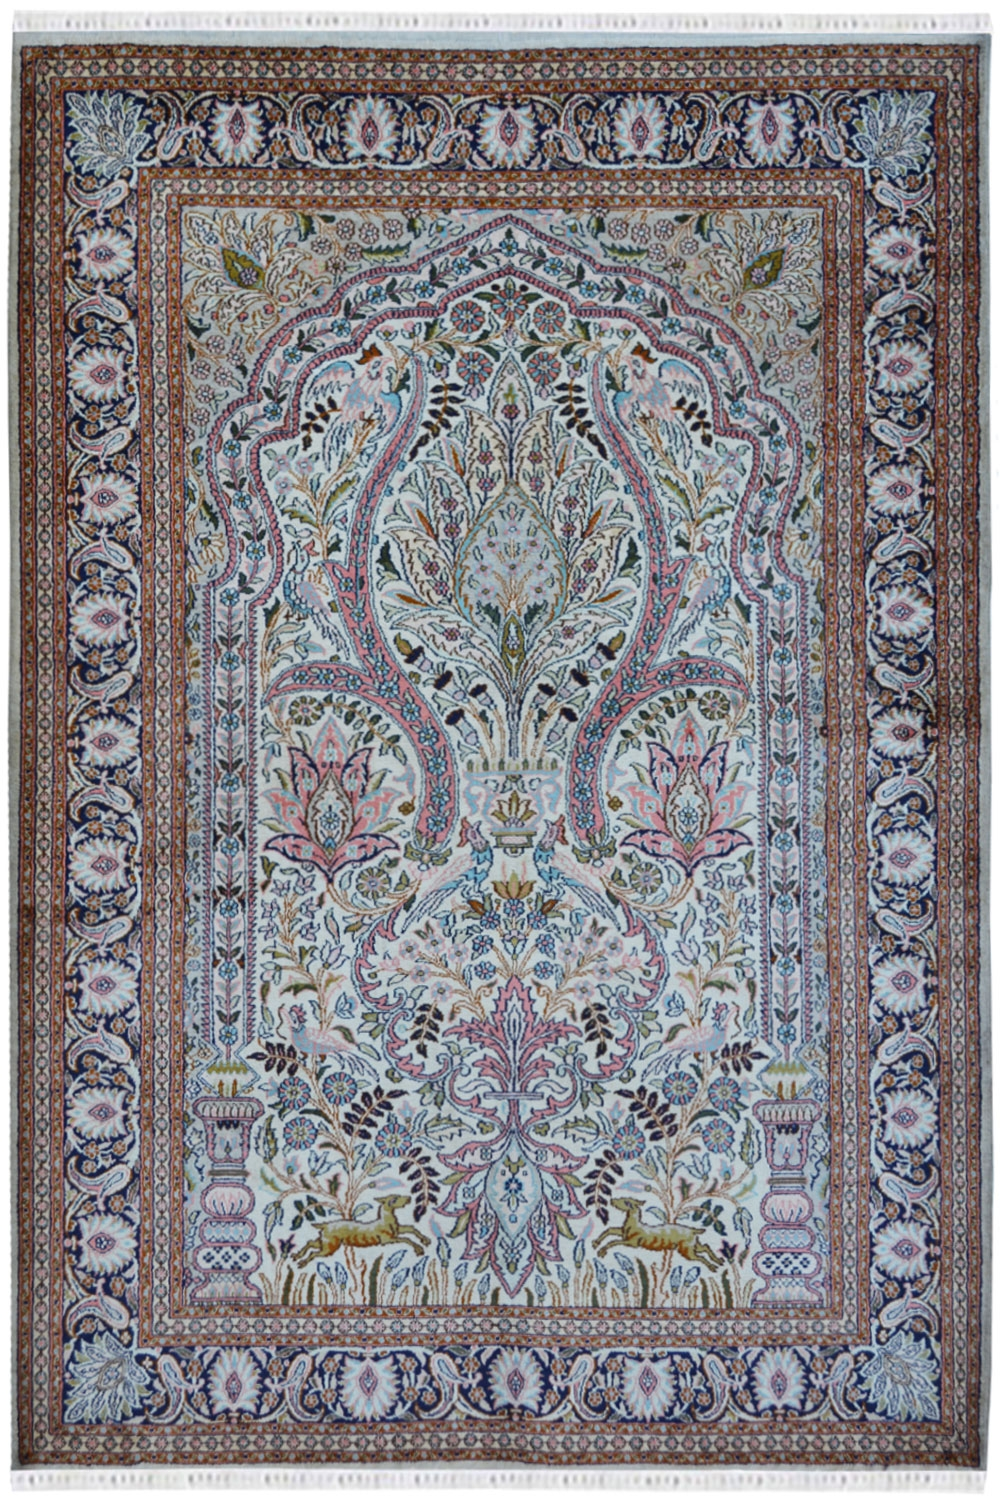 Chinese Tree Of Life Silk On Cotton Handmade Carpets With